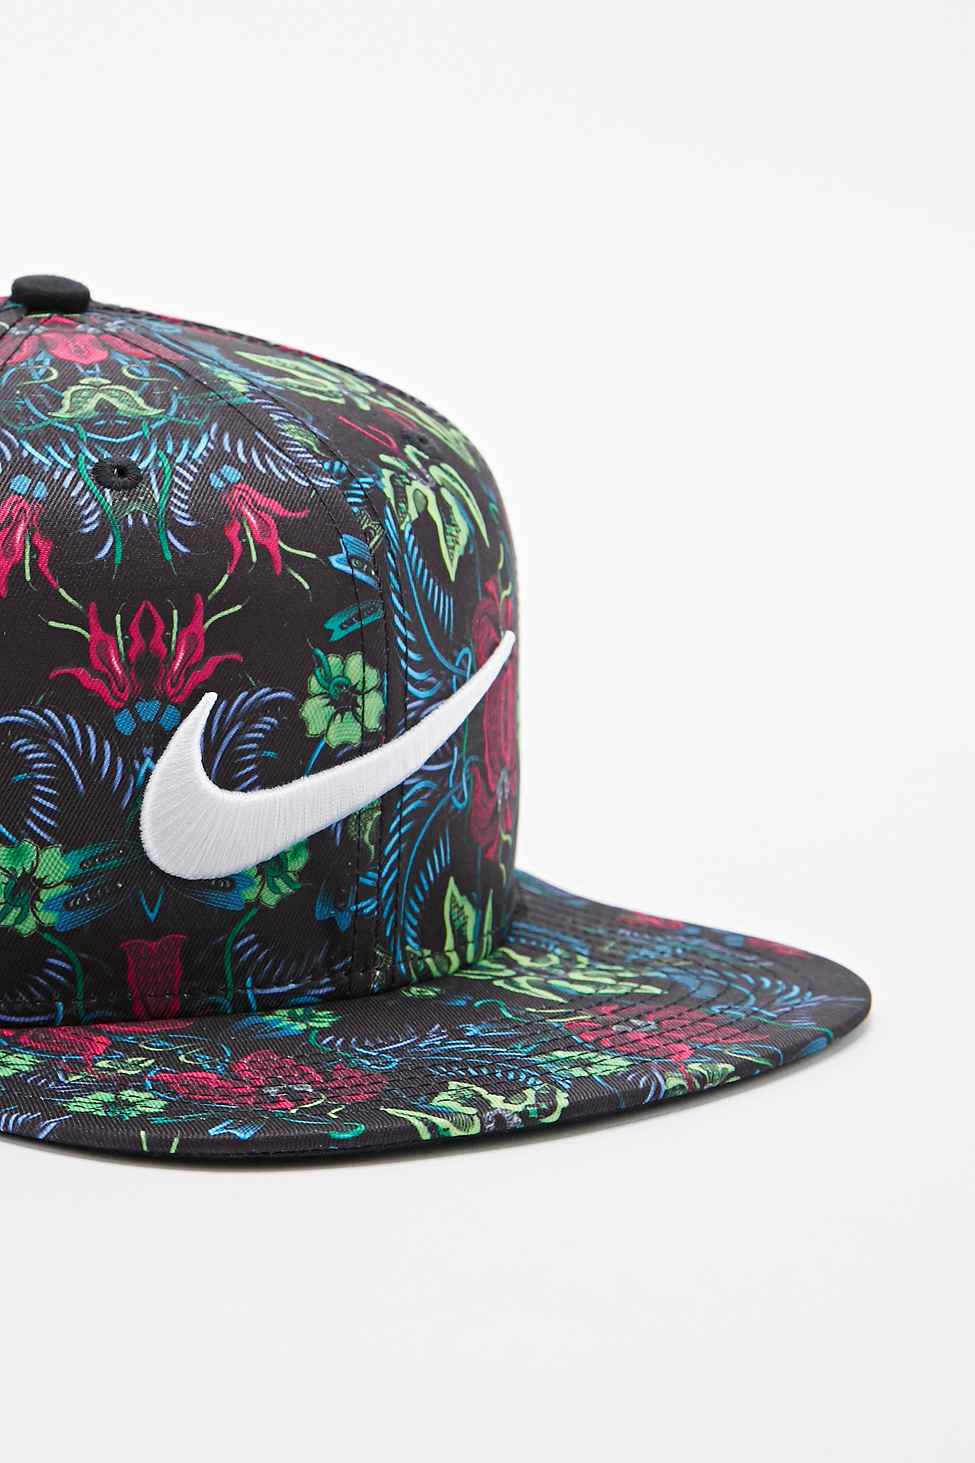 ca0d2449c46 ... best price nike pro floral snapback cap in green and pink for men lyst  66a05 cdb36